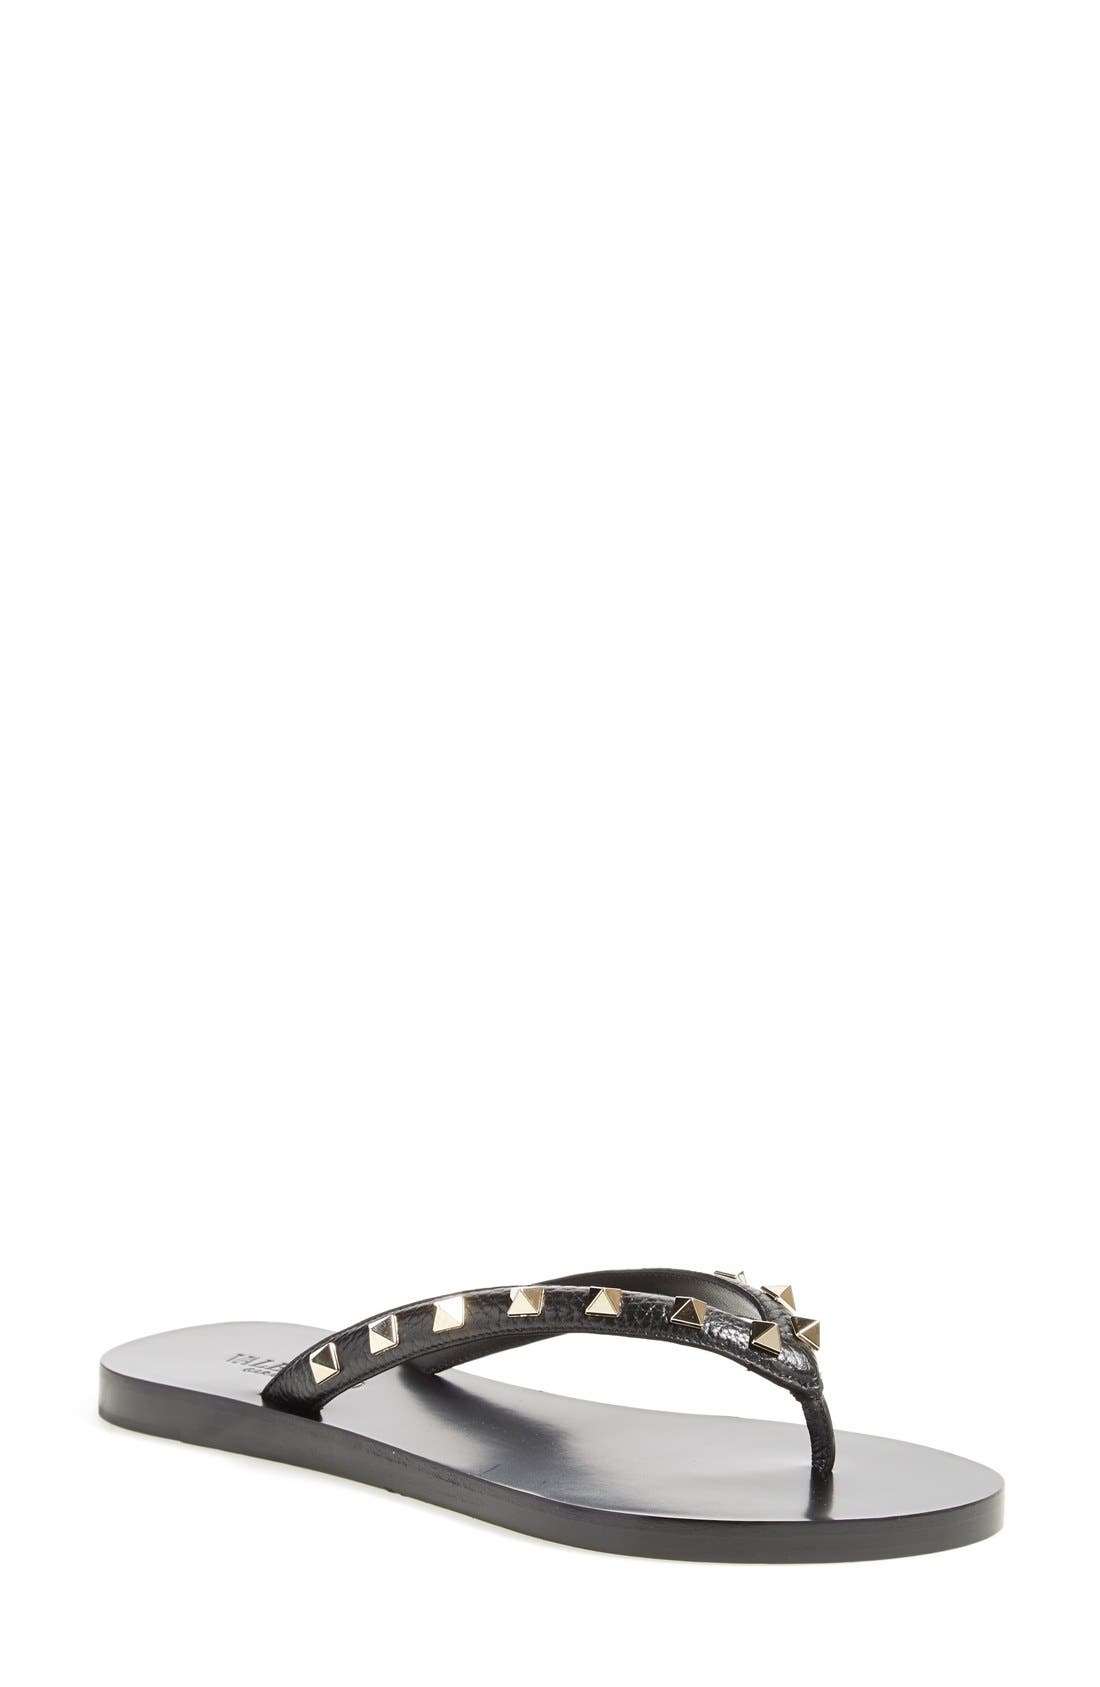 'Rockstud' Flip Flop, Main, color, 002